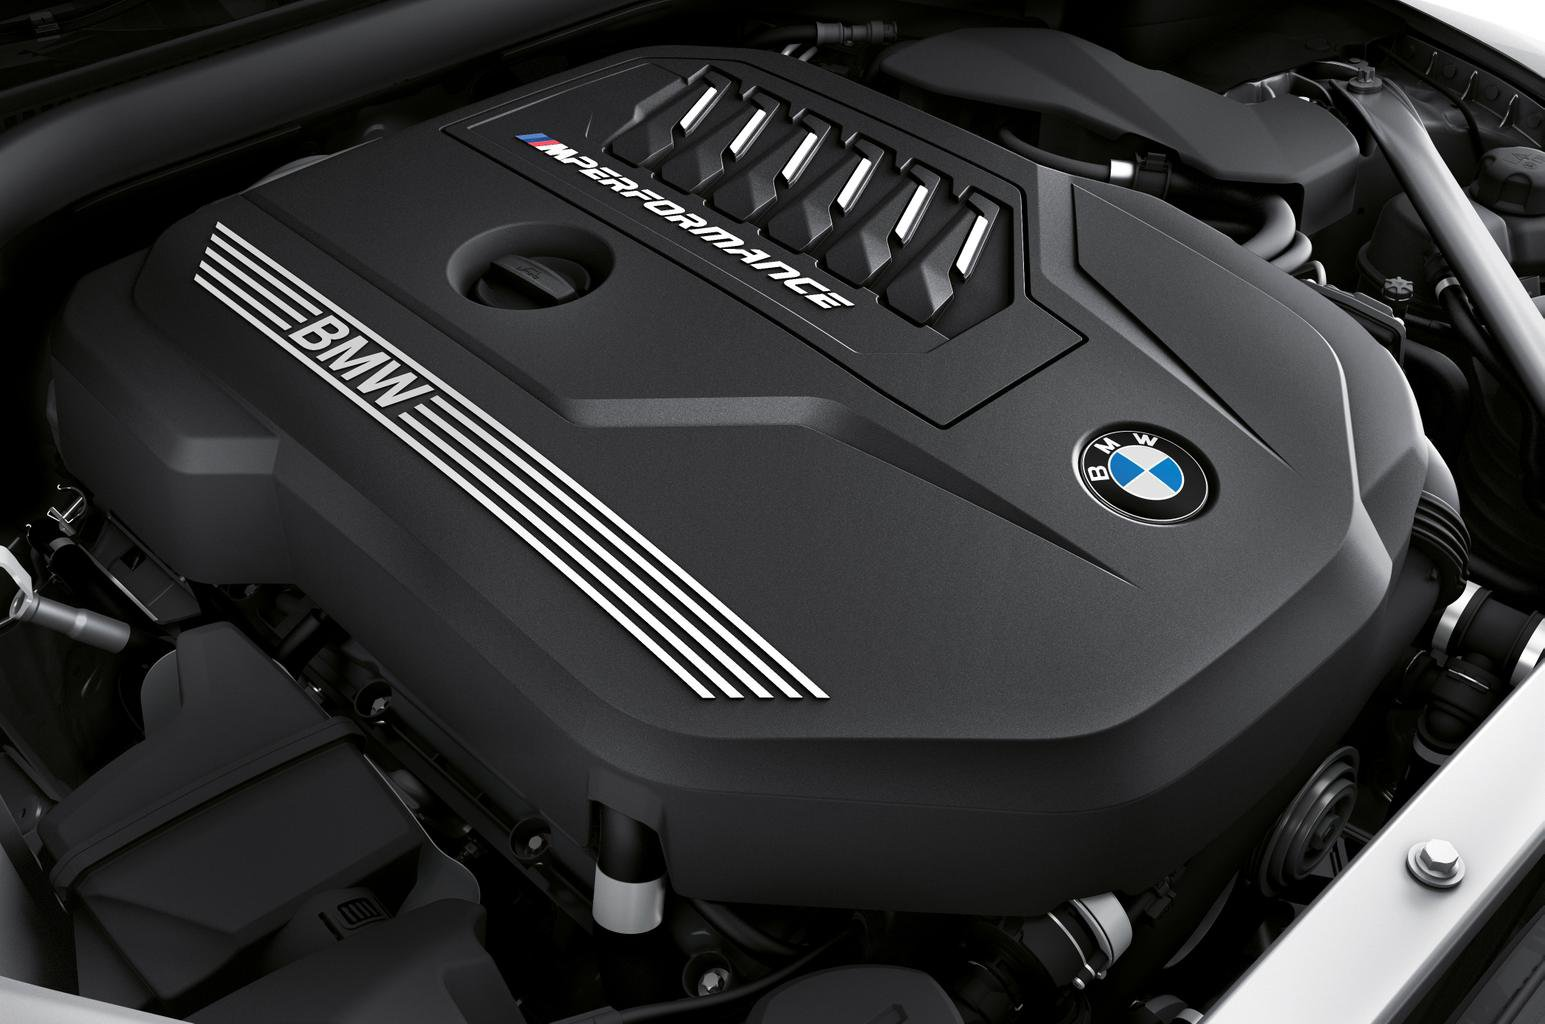 2019 BMW Z4 engine